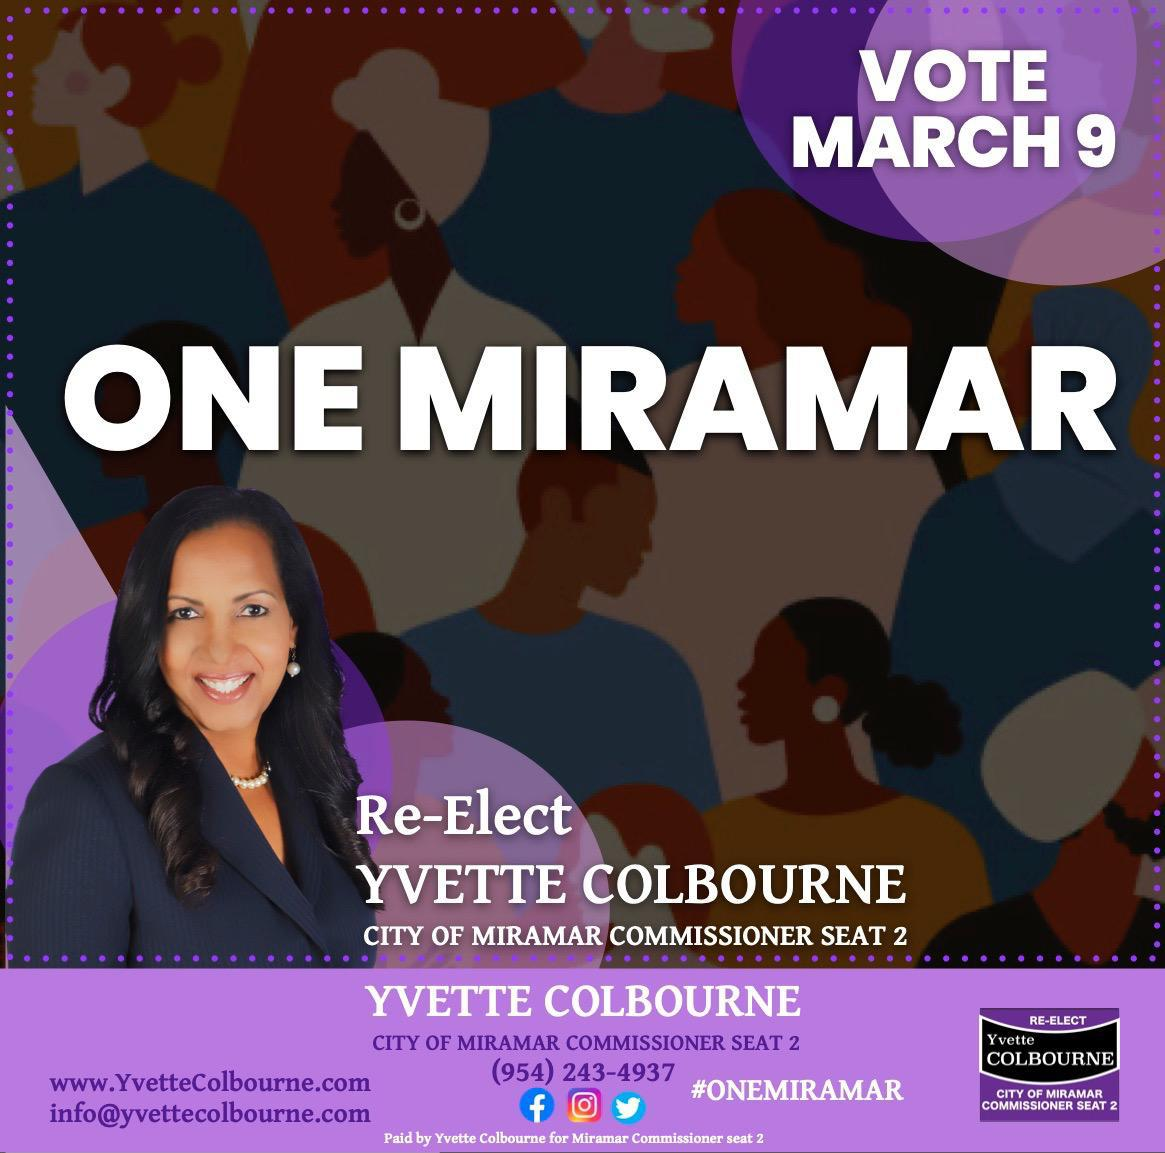 Vote For Yvette Colbourne